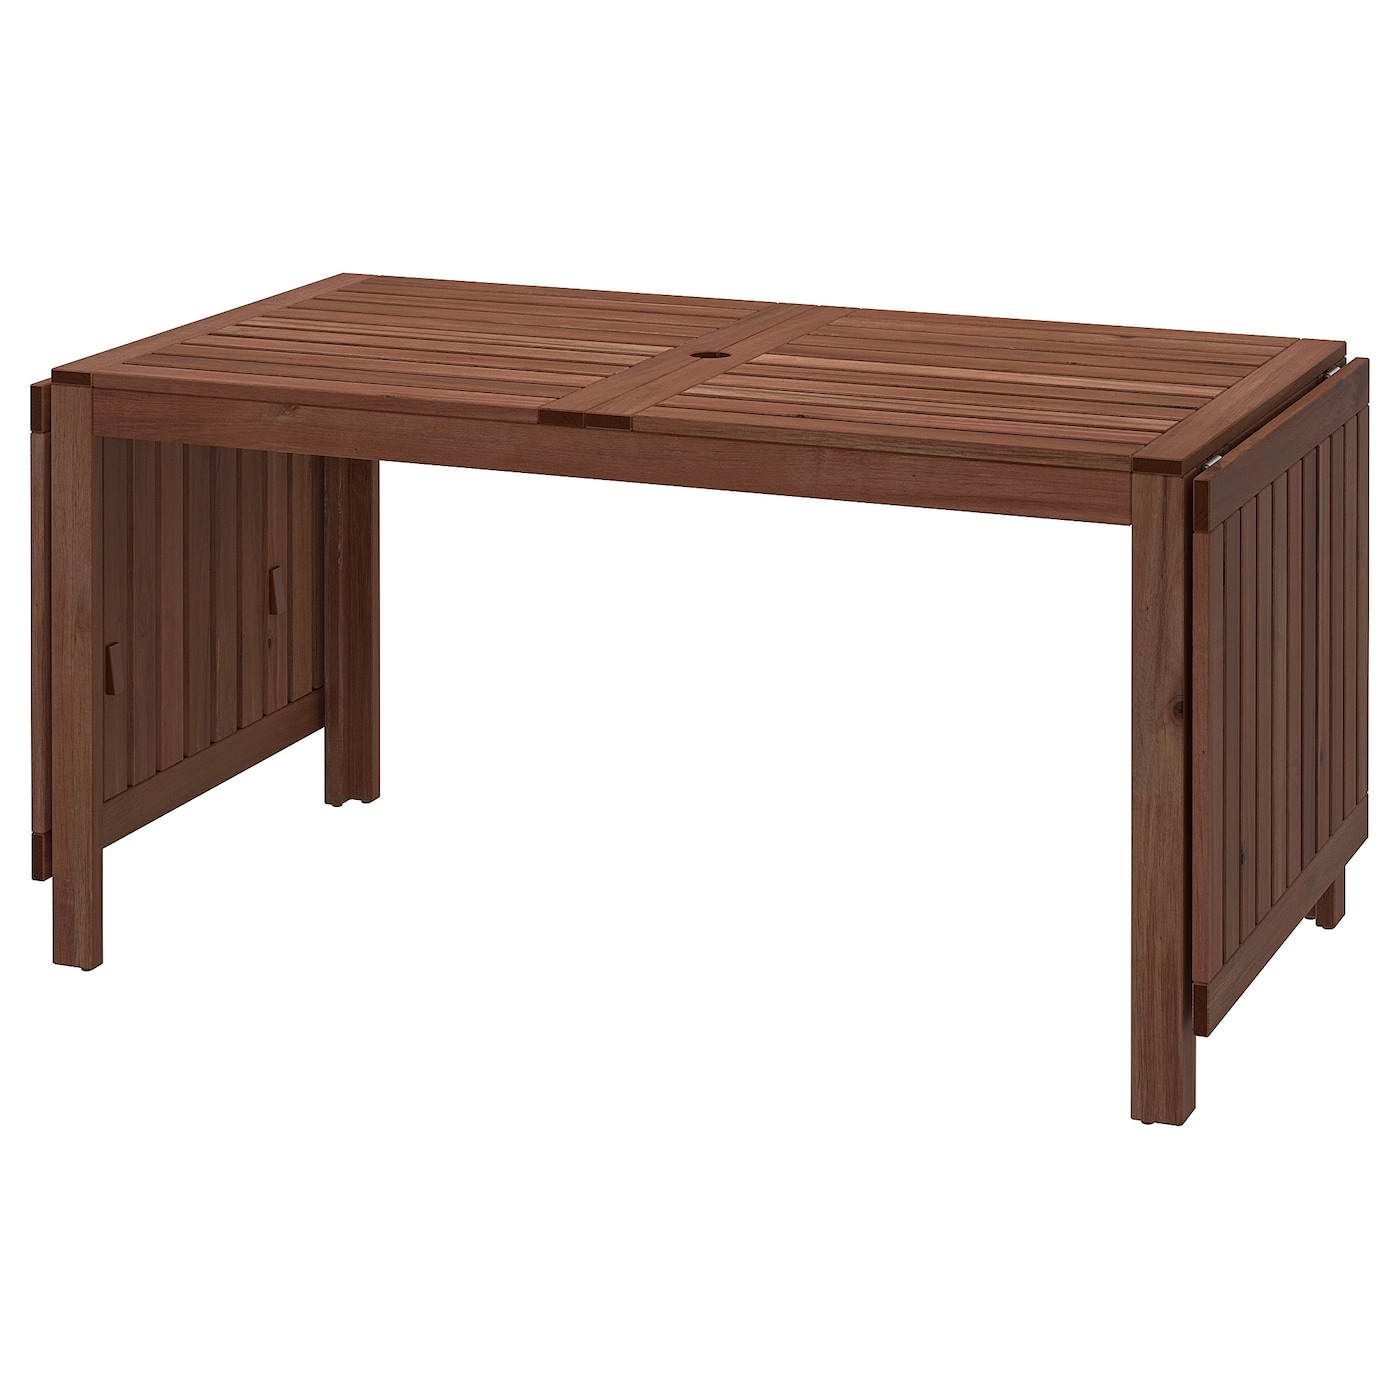 IKEA ÄPPLARÖ drop-leaf table, outdoor